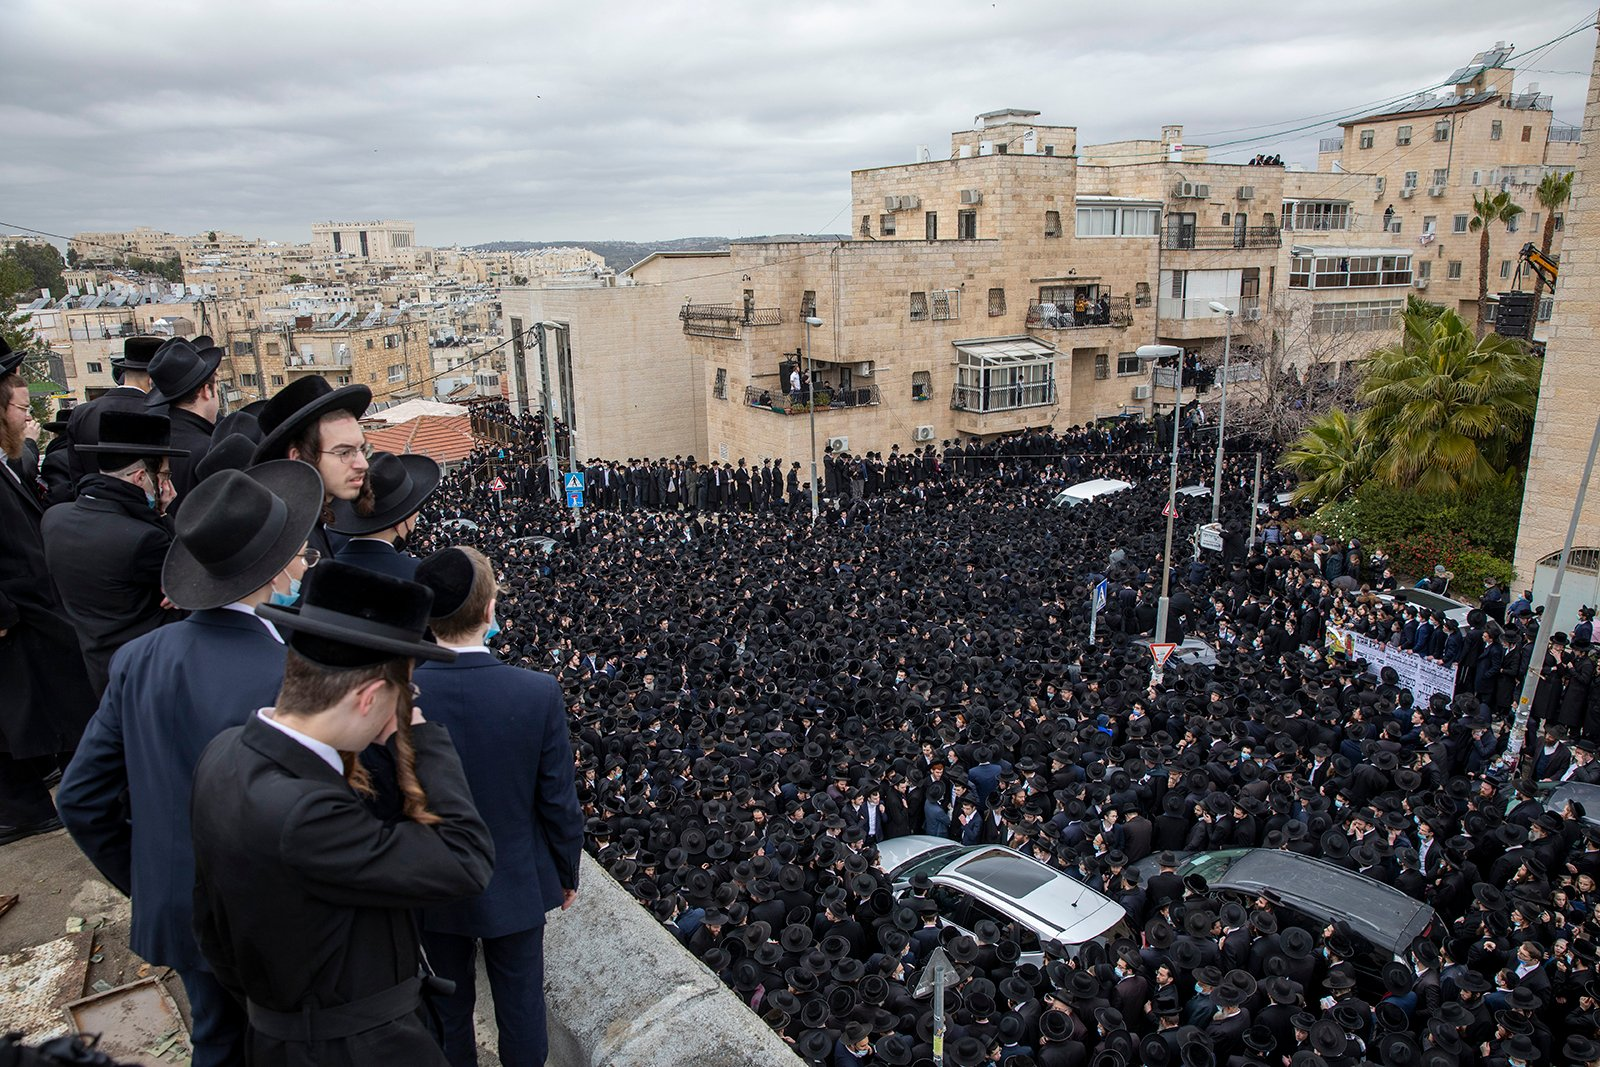 Thousands of ultra-Orthodox Jews participate in a funeral for prominent rabbi Meshulam Soloveitchik, in Jerusalem, Sunday, Jan. 31, 2021. The mass ceremony took place despite the country's health regulations banning large public gatherings, during a nationwide lockdown to curb the spread of the virus. (AP Photo/Ariel Schalit)